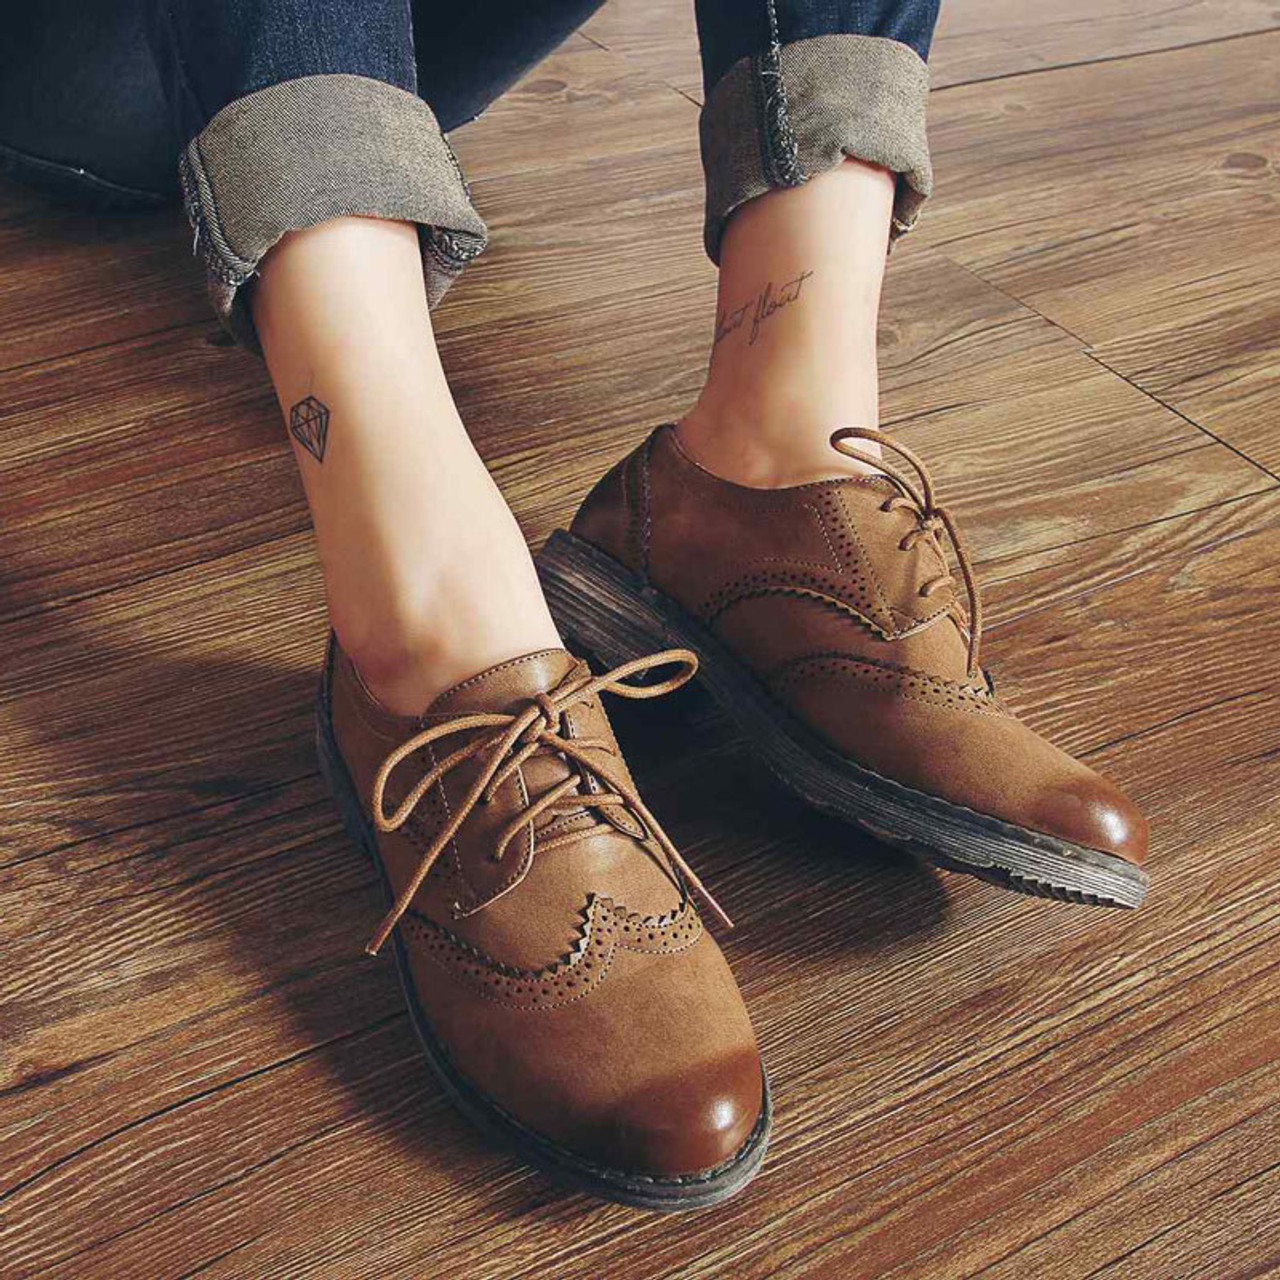 Teahoo Oxford Shoes for Women 2018 British Style Flats Brogues Leather  Shoes Woman Handmade Lace up Oxfords Women Shoes - OnshopDeals.Com 866f520b0c7